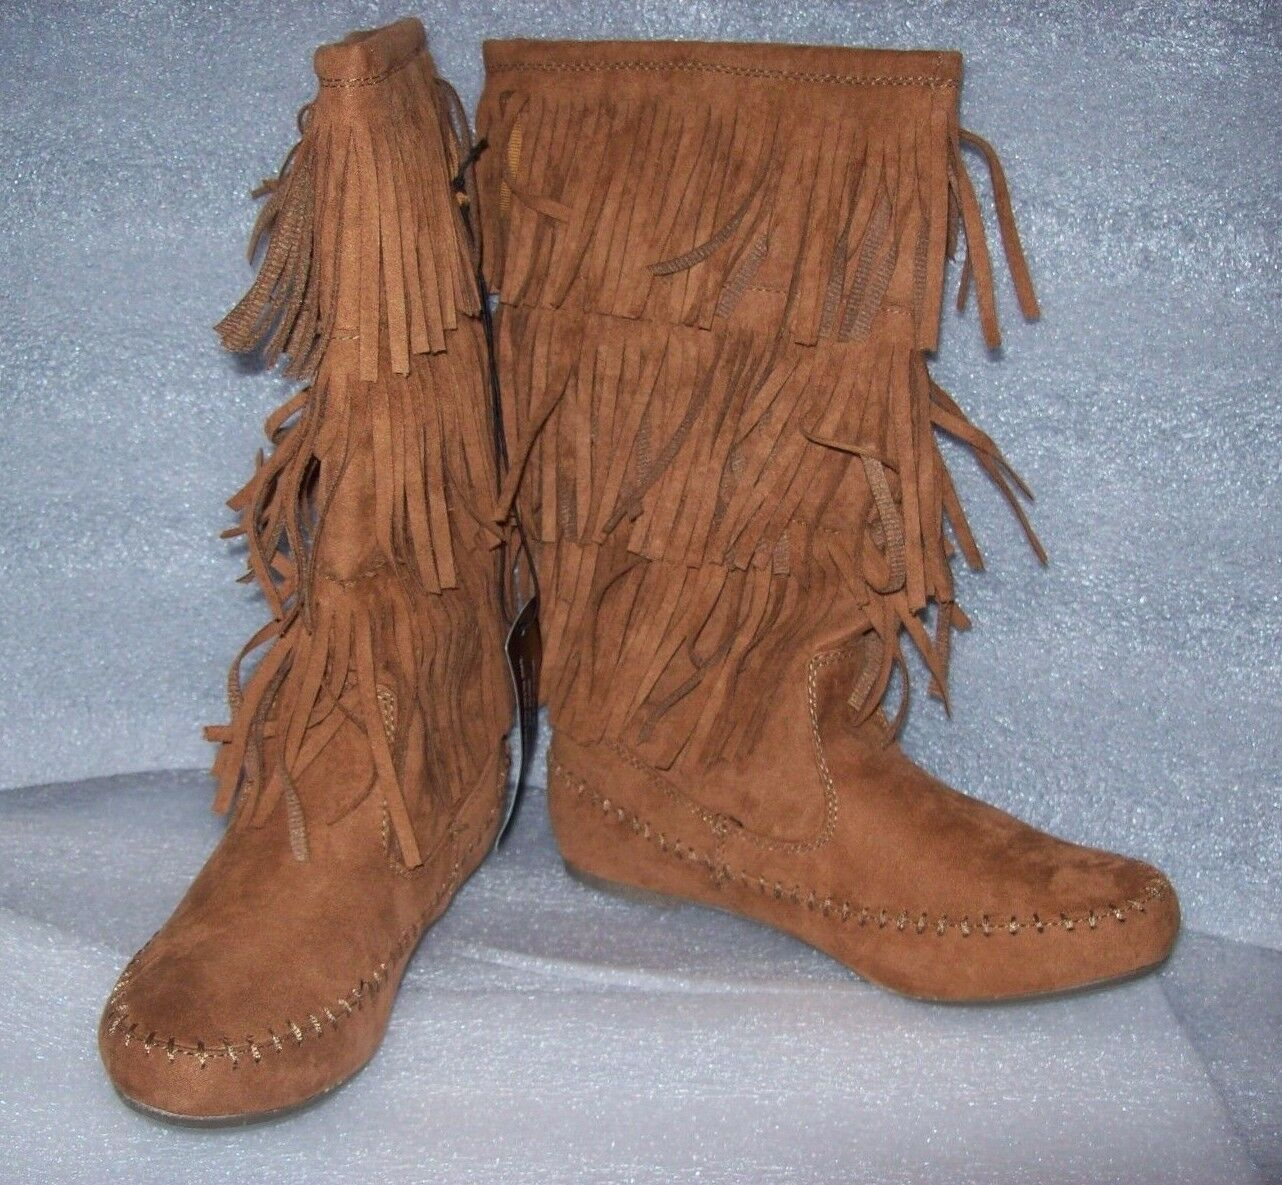 WOMEN'S ARIZONA TIVA FASHION BOOTS MULTIPLE SIZES NEW WITH IN BOX MSRP.00